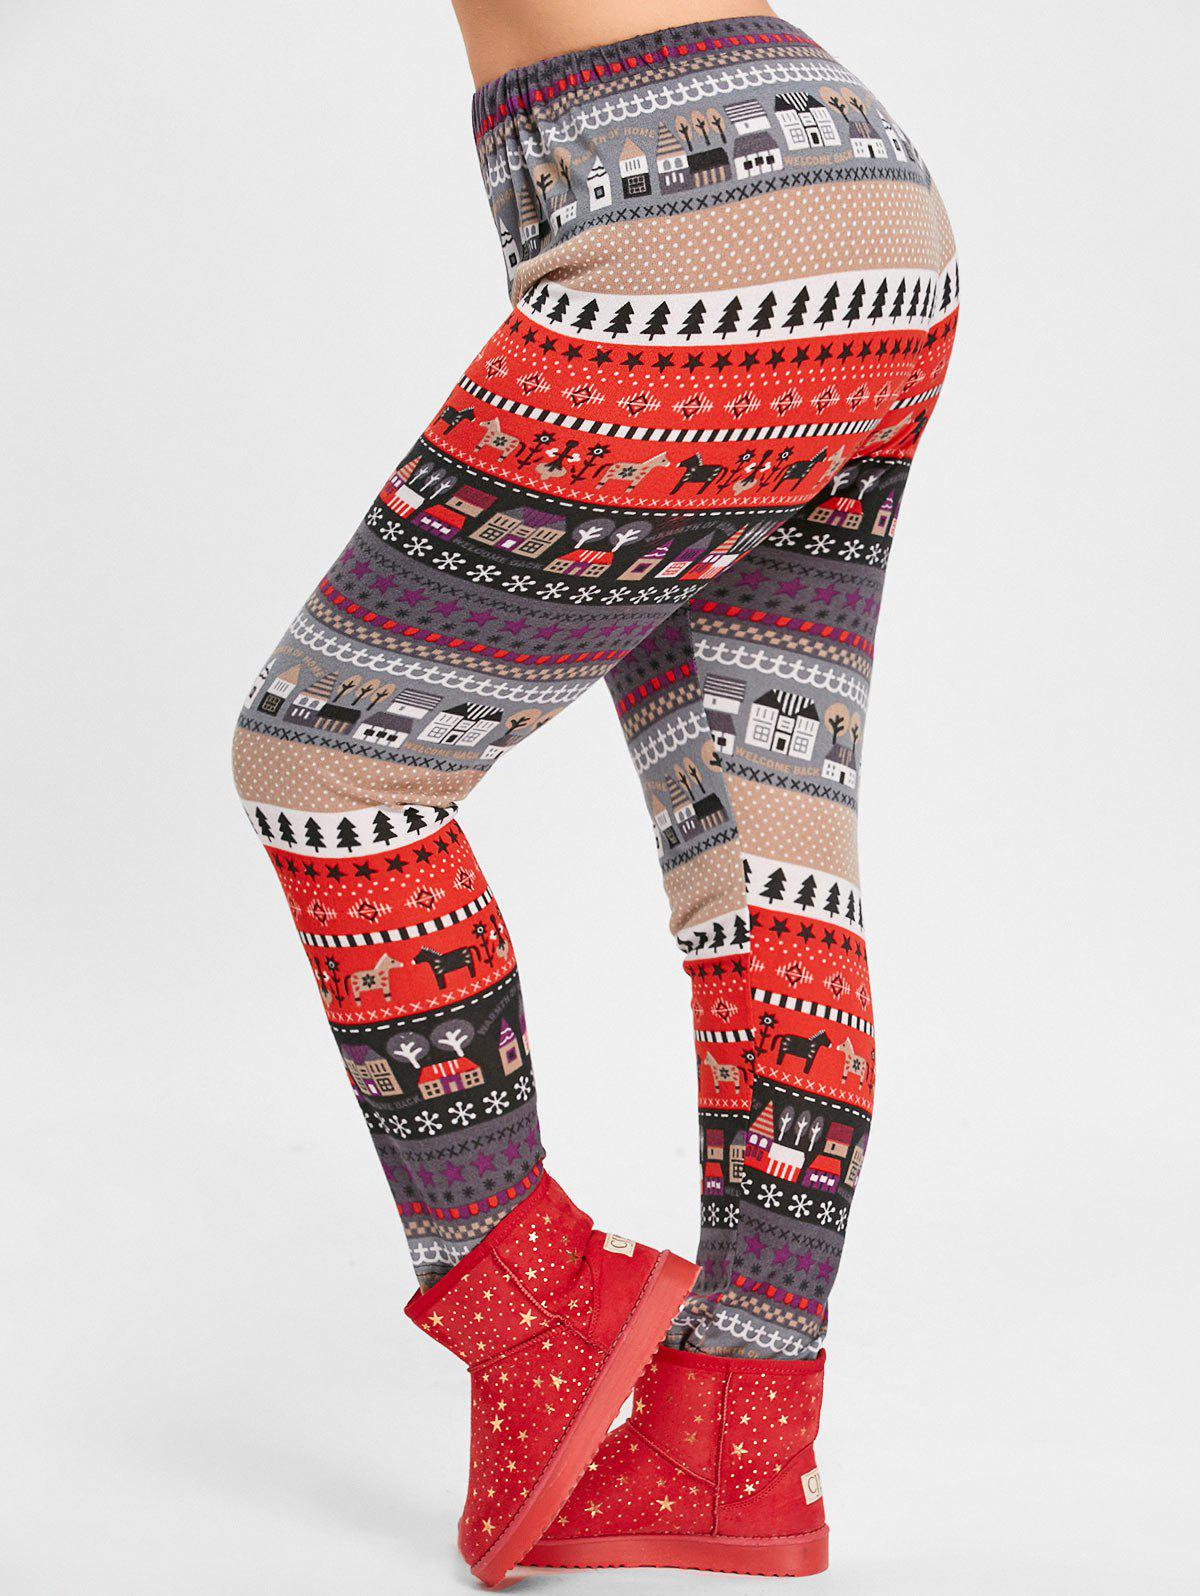 Christmas Tree House Jacquard Plus Size Knitted LeggingsWOMEN<br><br>Size: 5XL; Color: RED; Style: Casual; Length: Normal; Material: Acrylic,Polyester; Fit Type: Regular; Waist Type: Mid; Closure Type: Elastic Waist; Pattern Type: Animal; Pant Style: Pencil Pants; With Belt: No; Weight: 0.2850kg; Package Contents: 1 x Leggings;